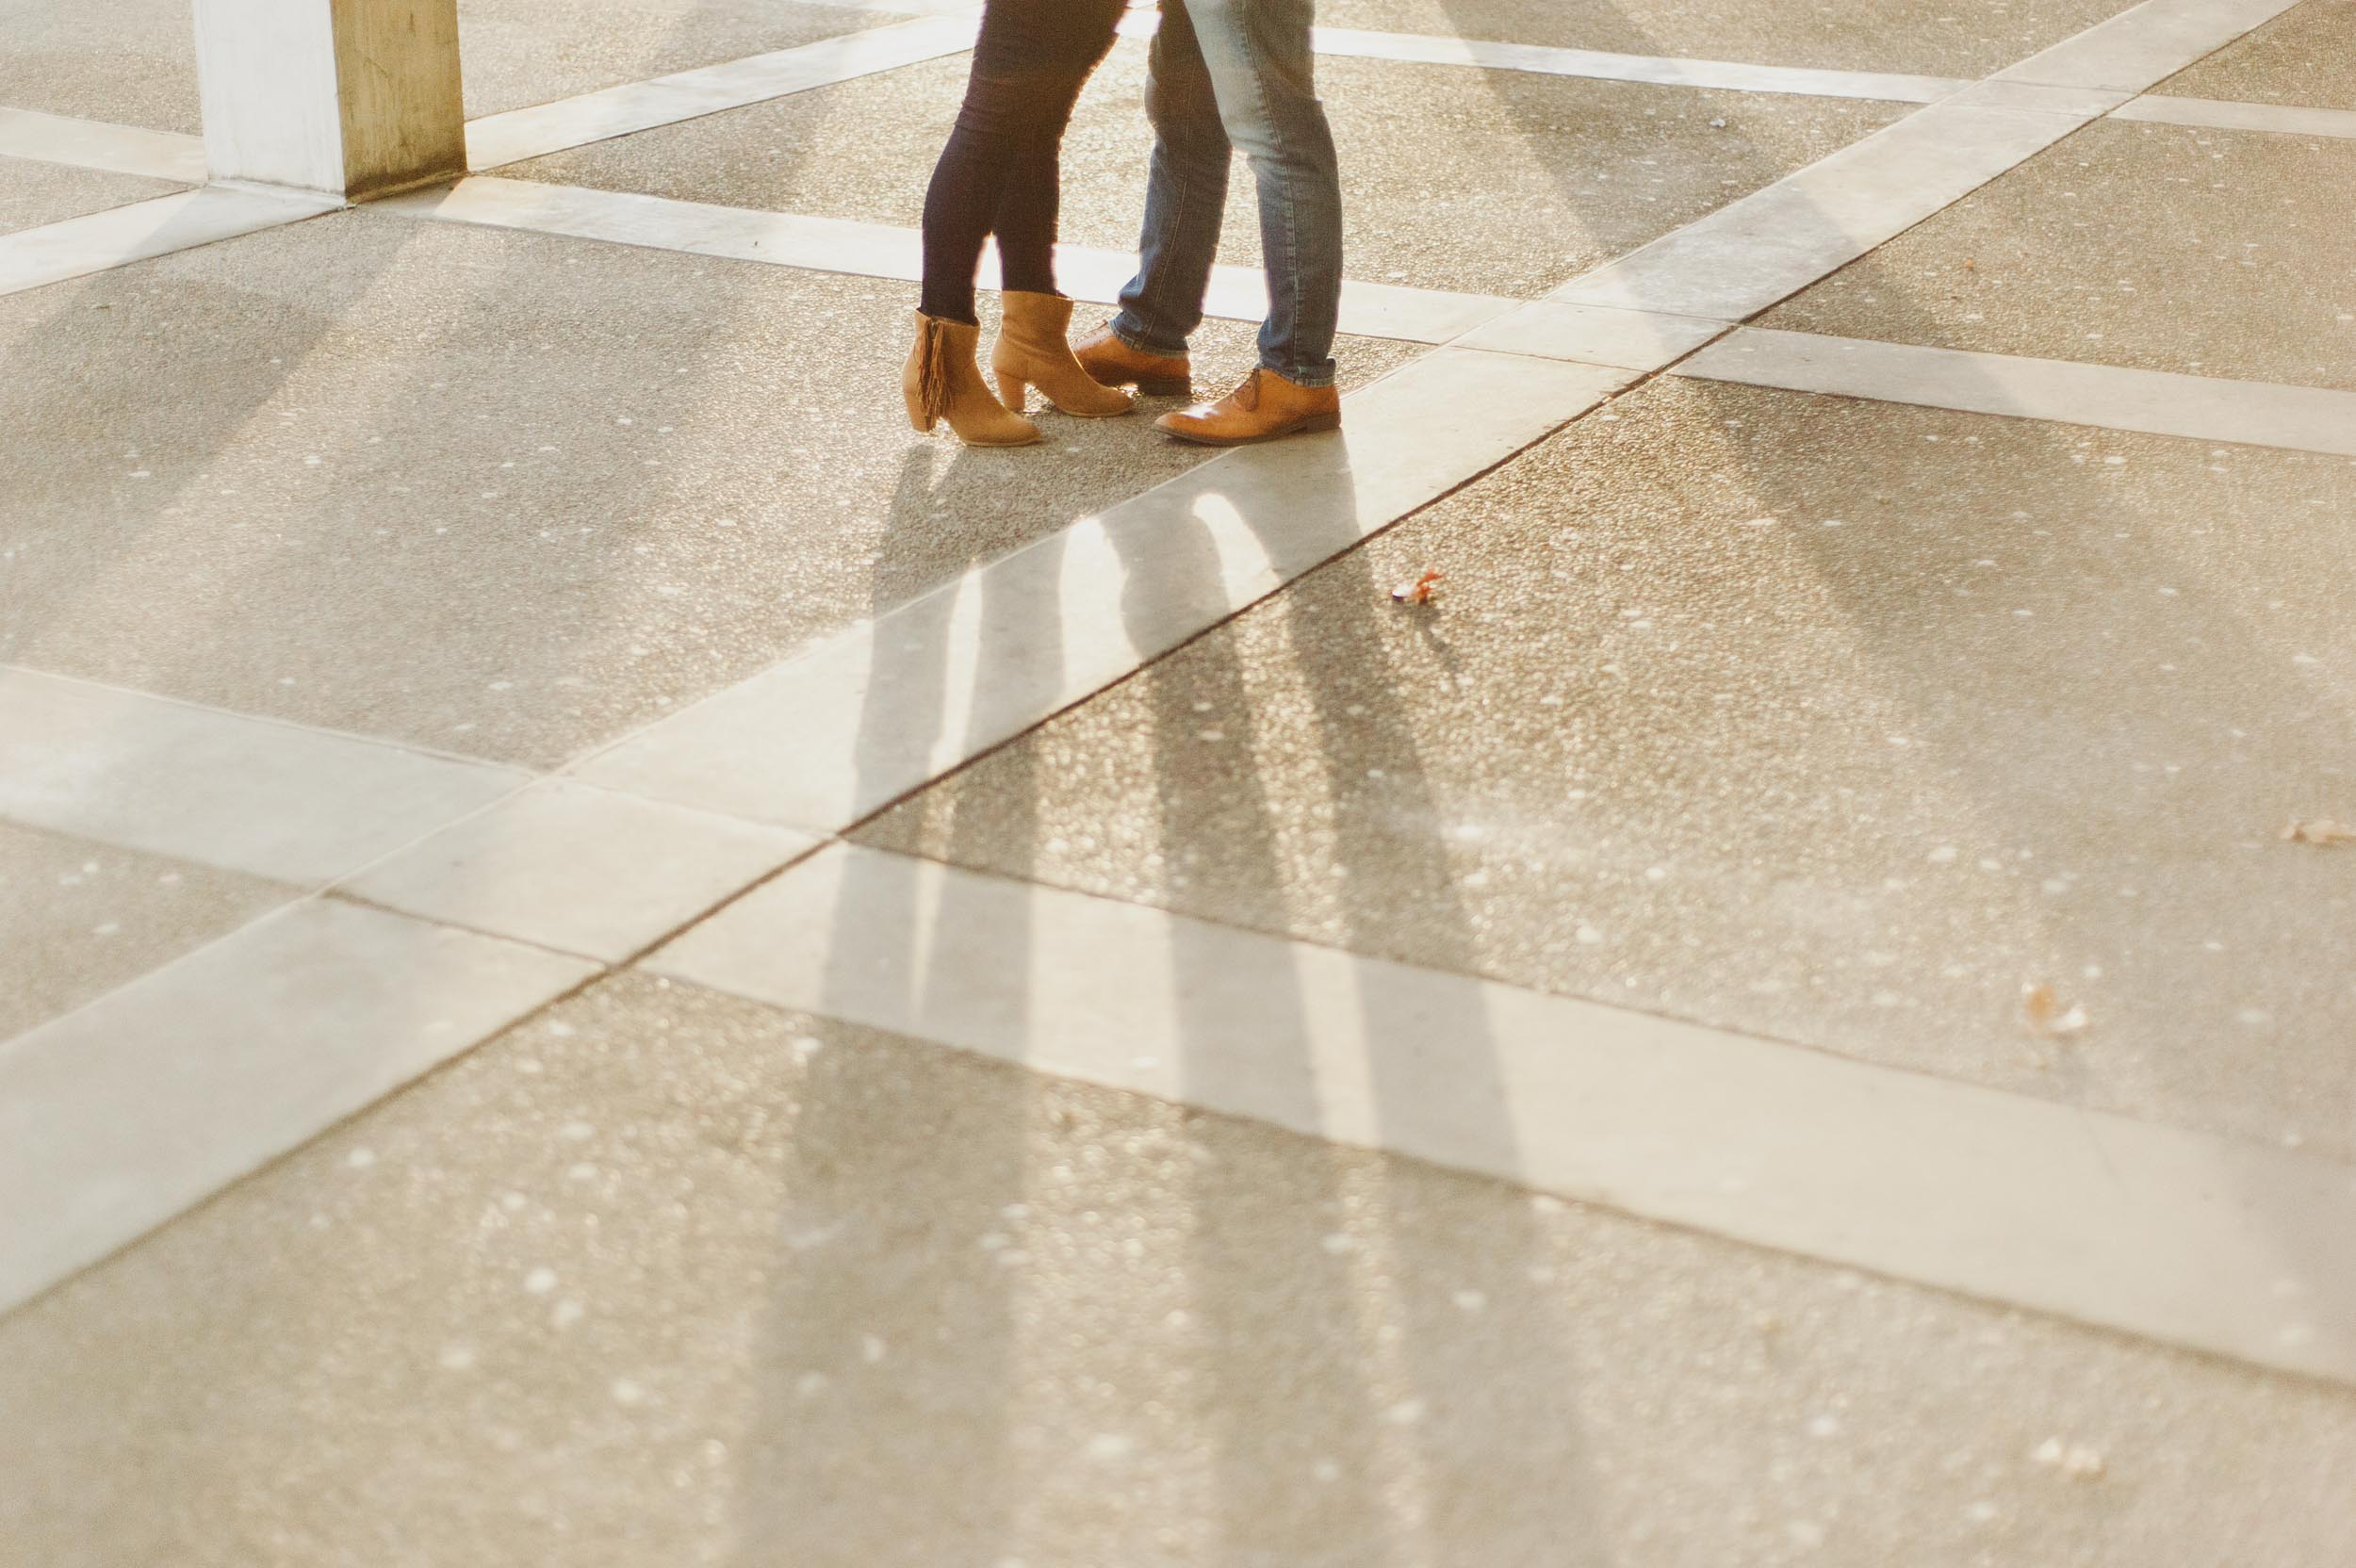 The feet of a man and woman are washed in light as the rising sun shines on them at the University of Albany campus.